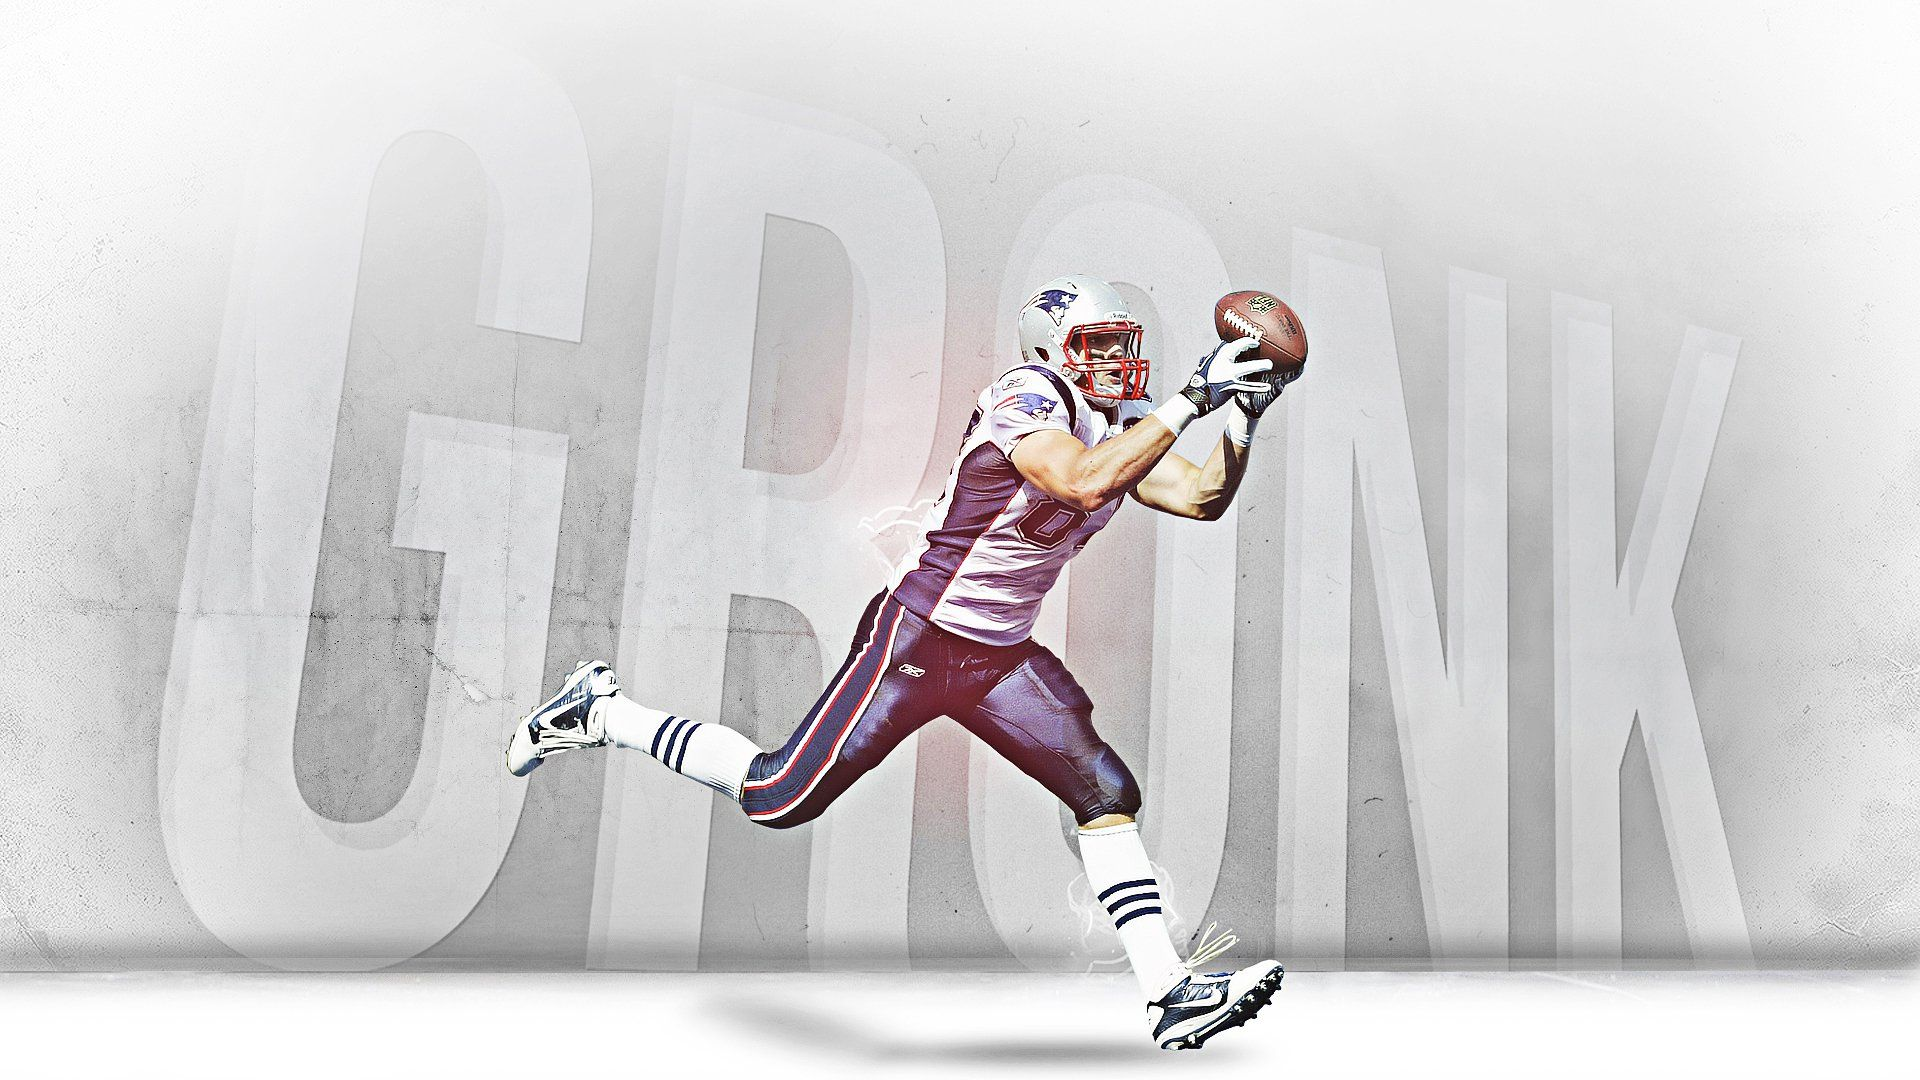 new england patriots wallpaper 2015 Google Search